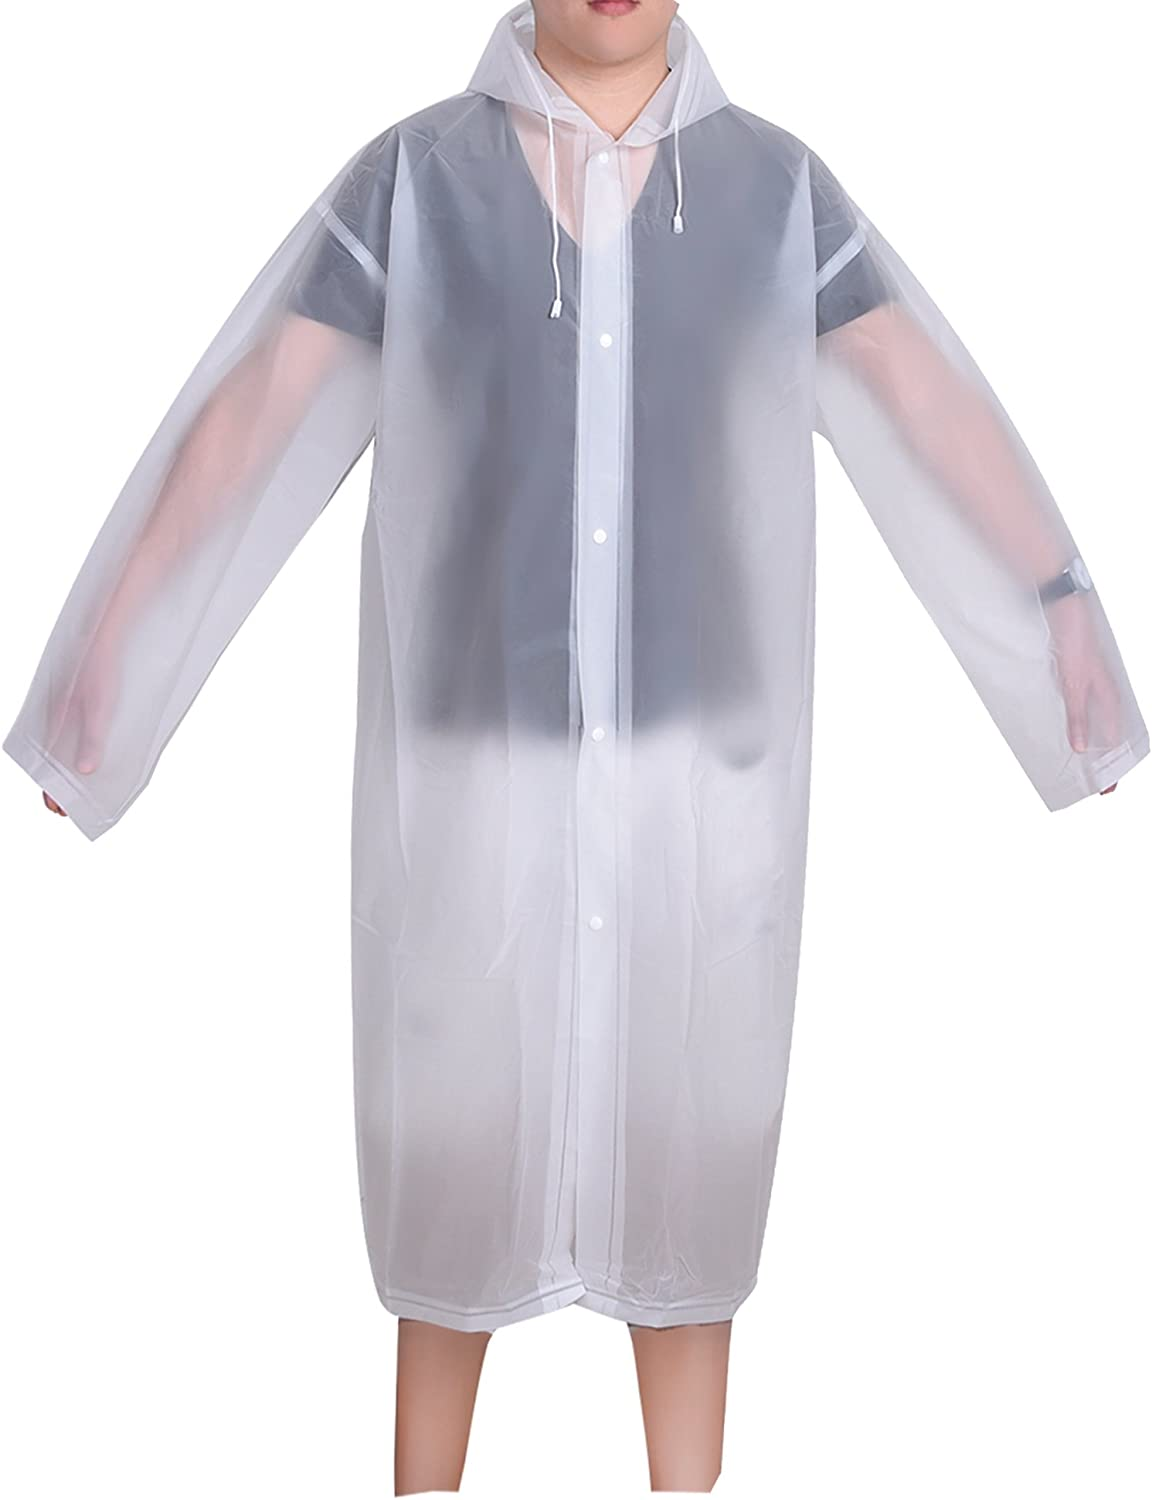 Mudder Adult Portable Raincoat Rain Poncho with Hoods and Sleeves